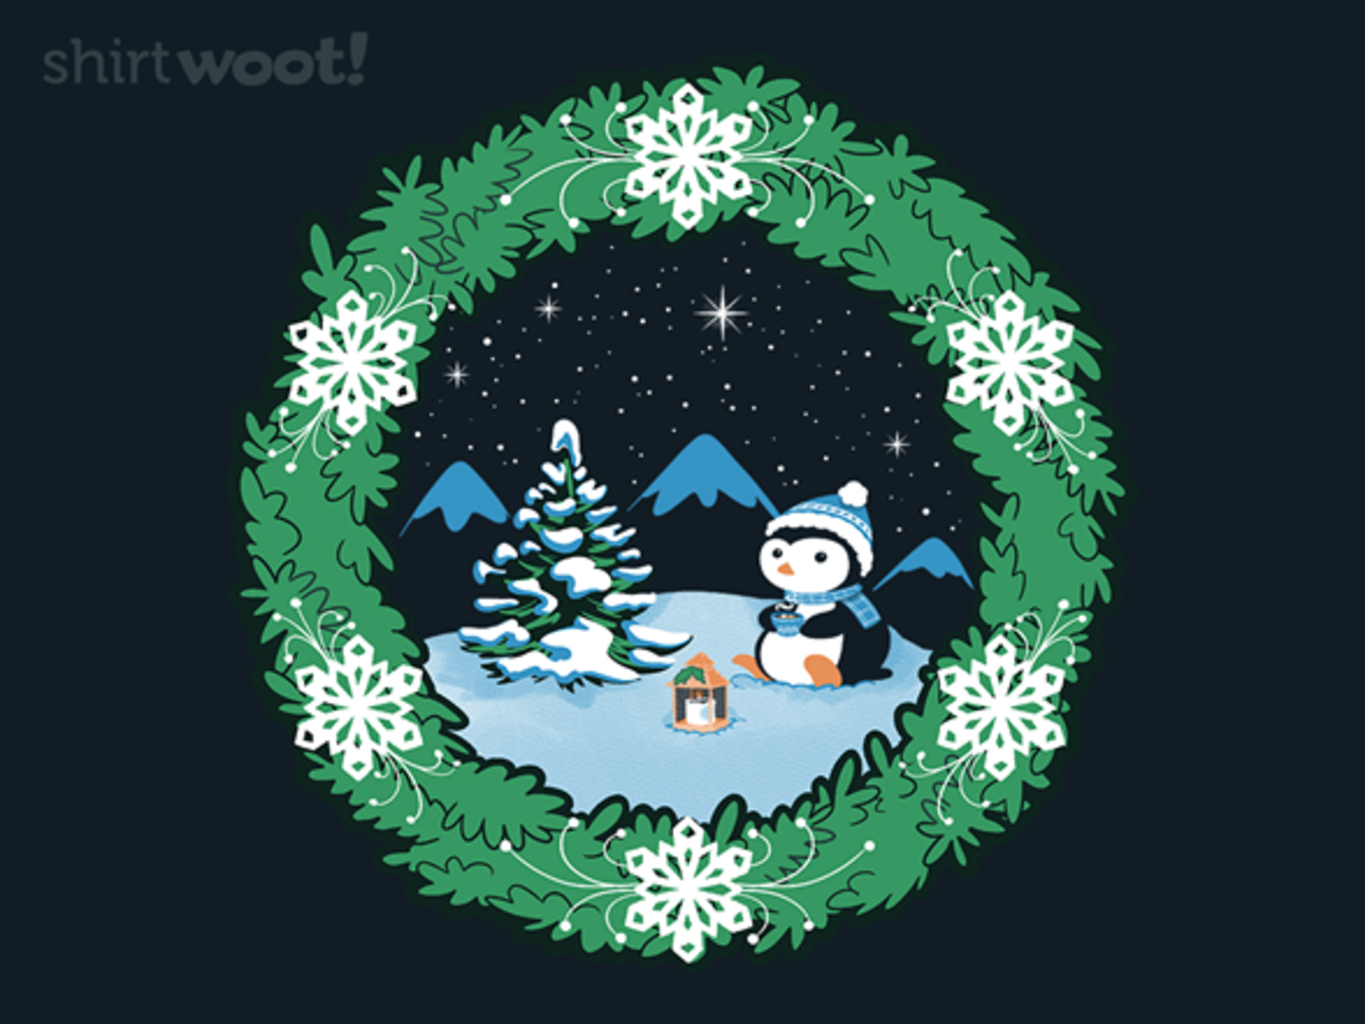 Woot!: Waddle in a Winter Wonderland